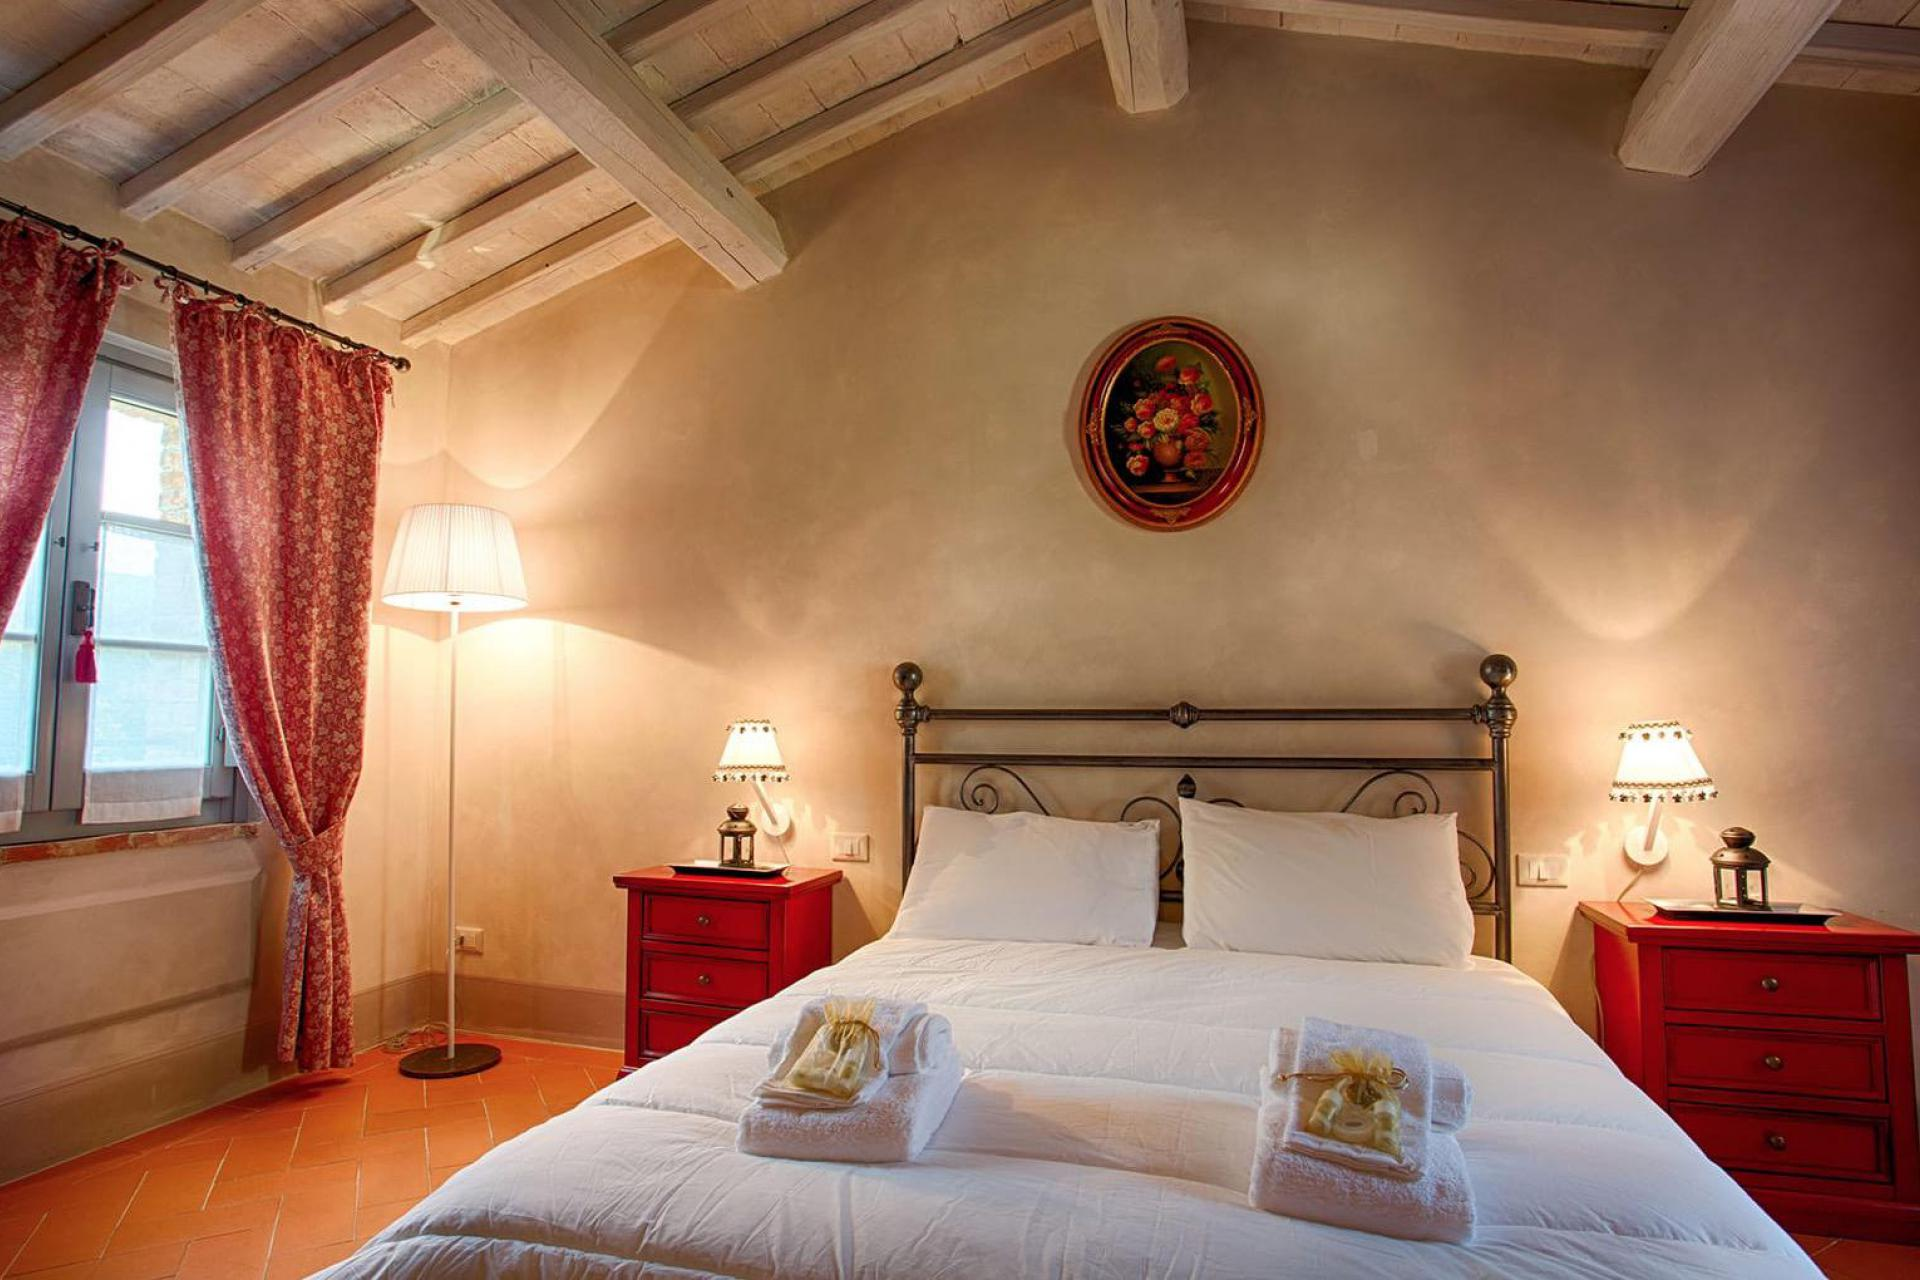 Agriturismo Tuscany Agriturismo in Tuscany within walking distance of a trattoria